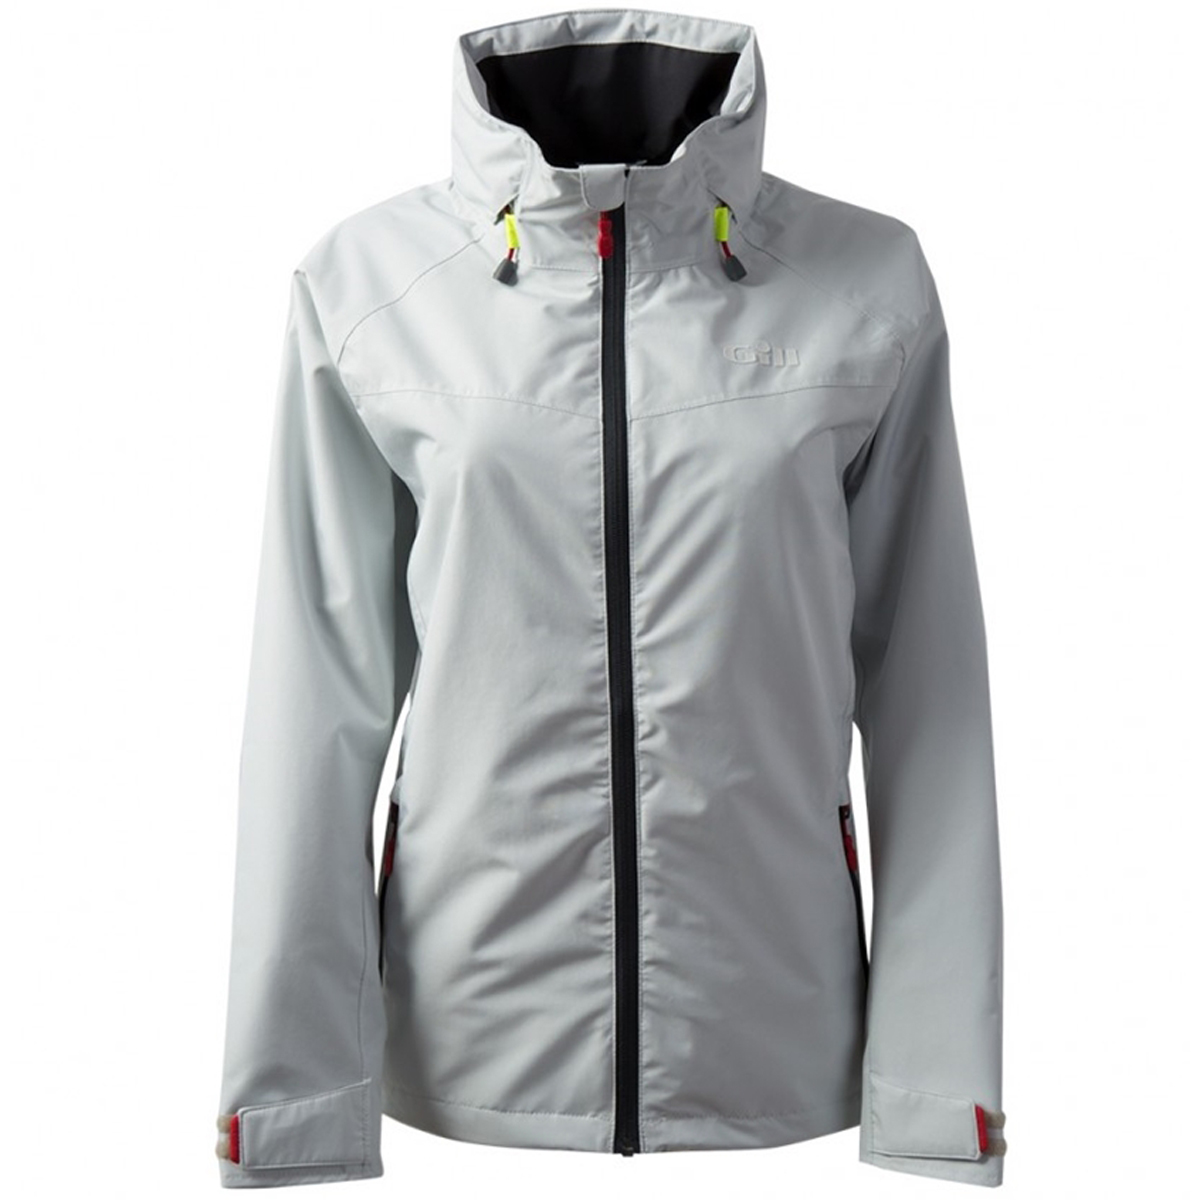 Gill Women's Pilot Jacket (IN81JW)